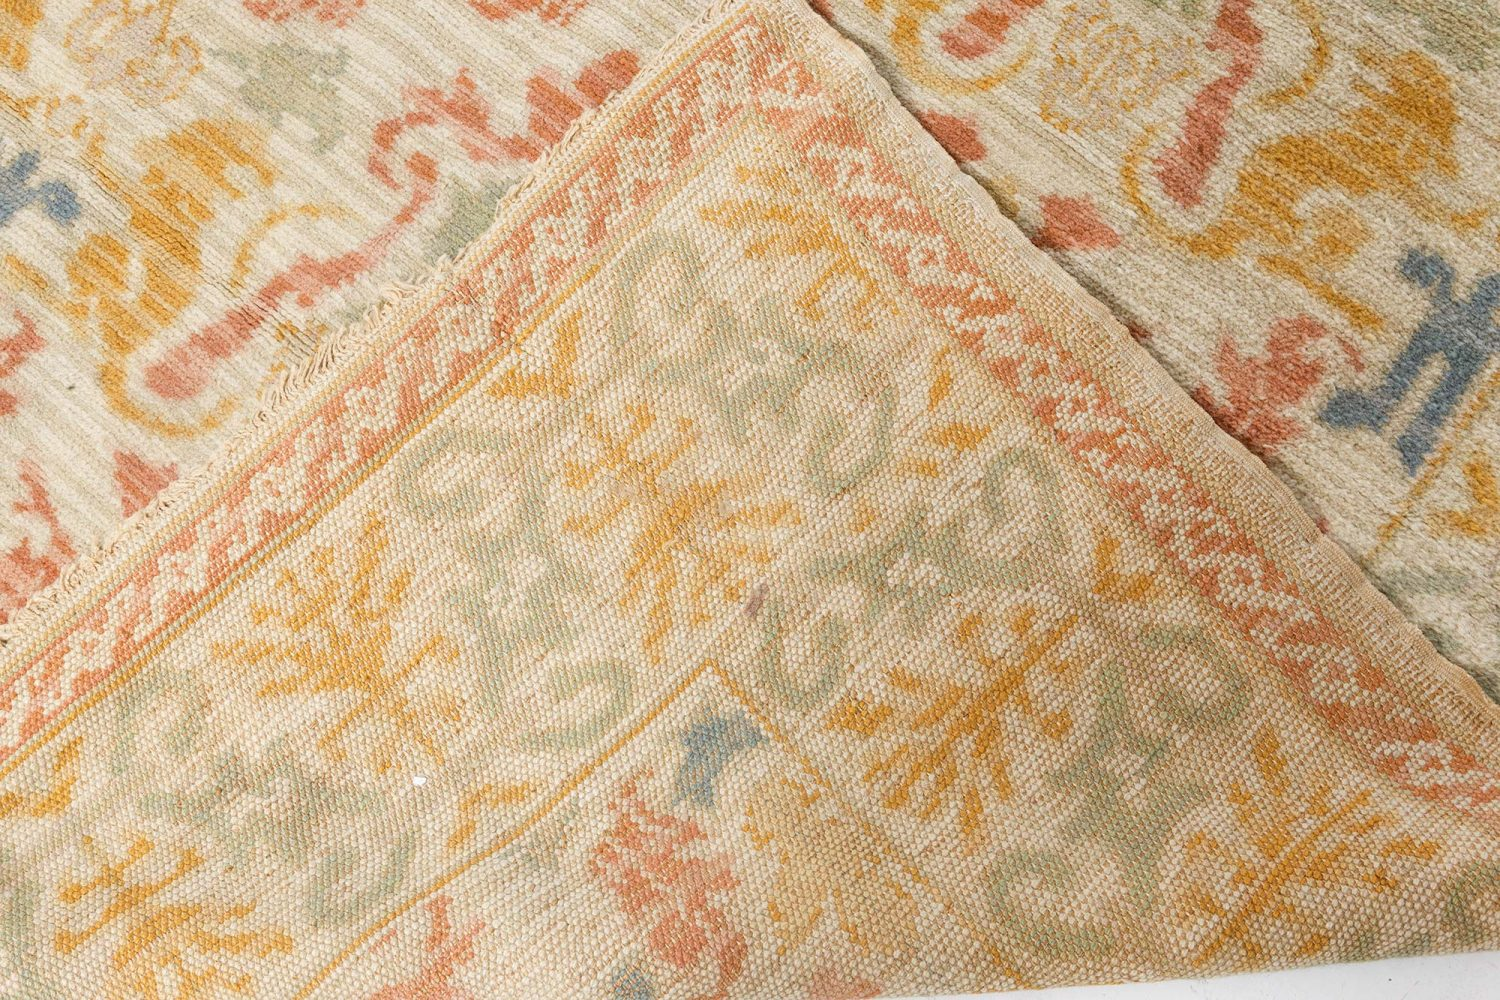 Vintage Botanic Spanish Handwoven Wool Carpet BB7111